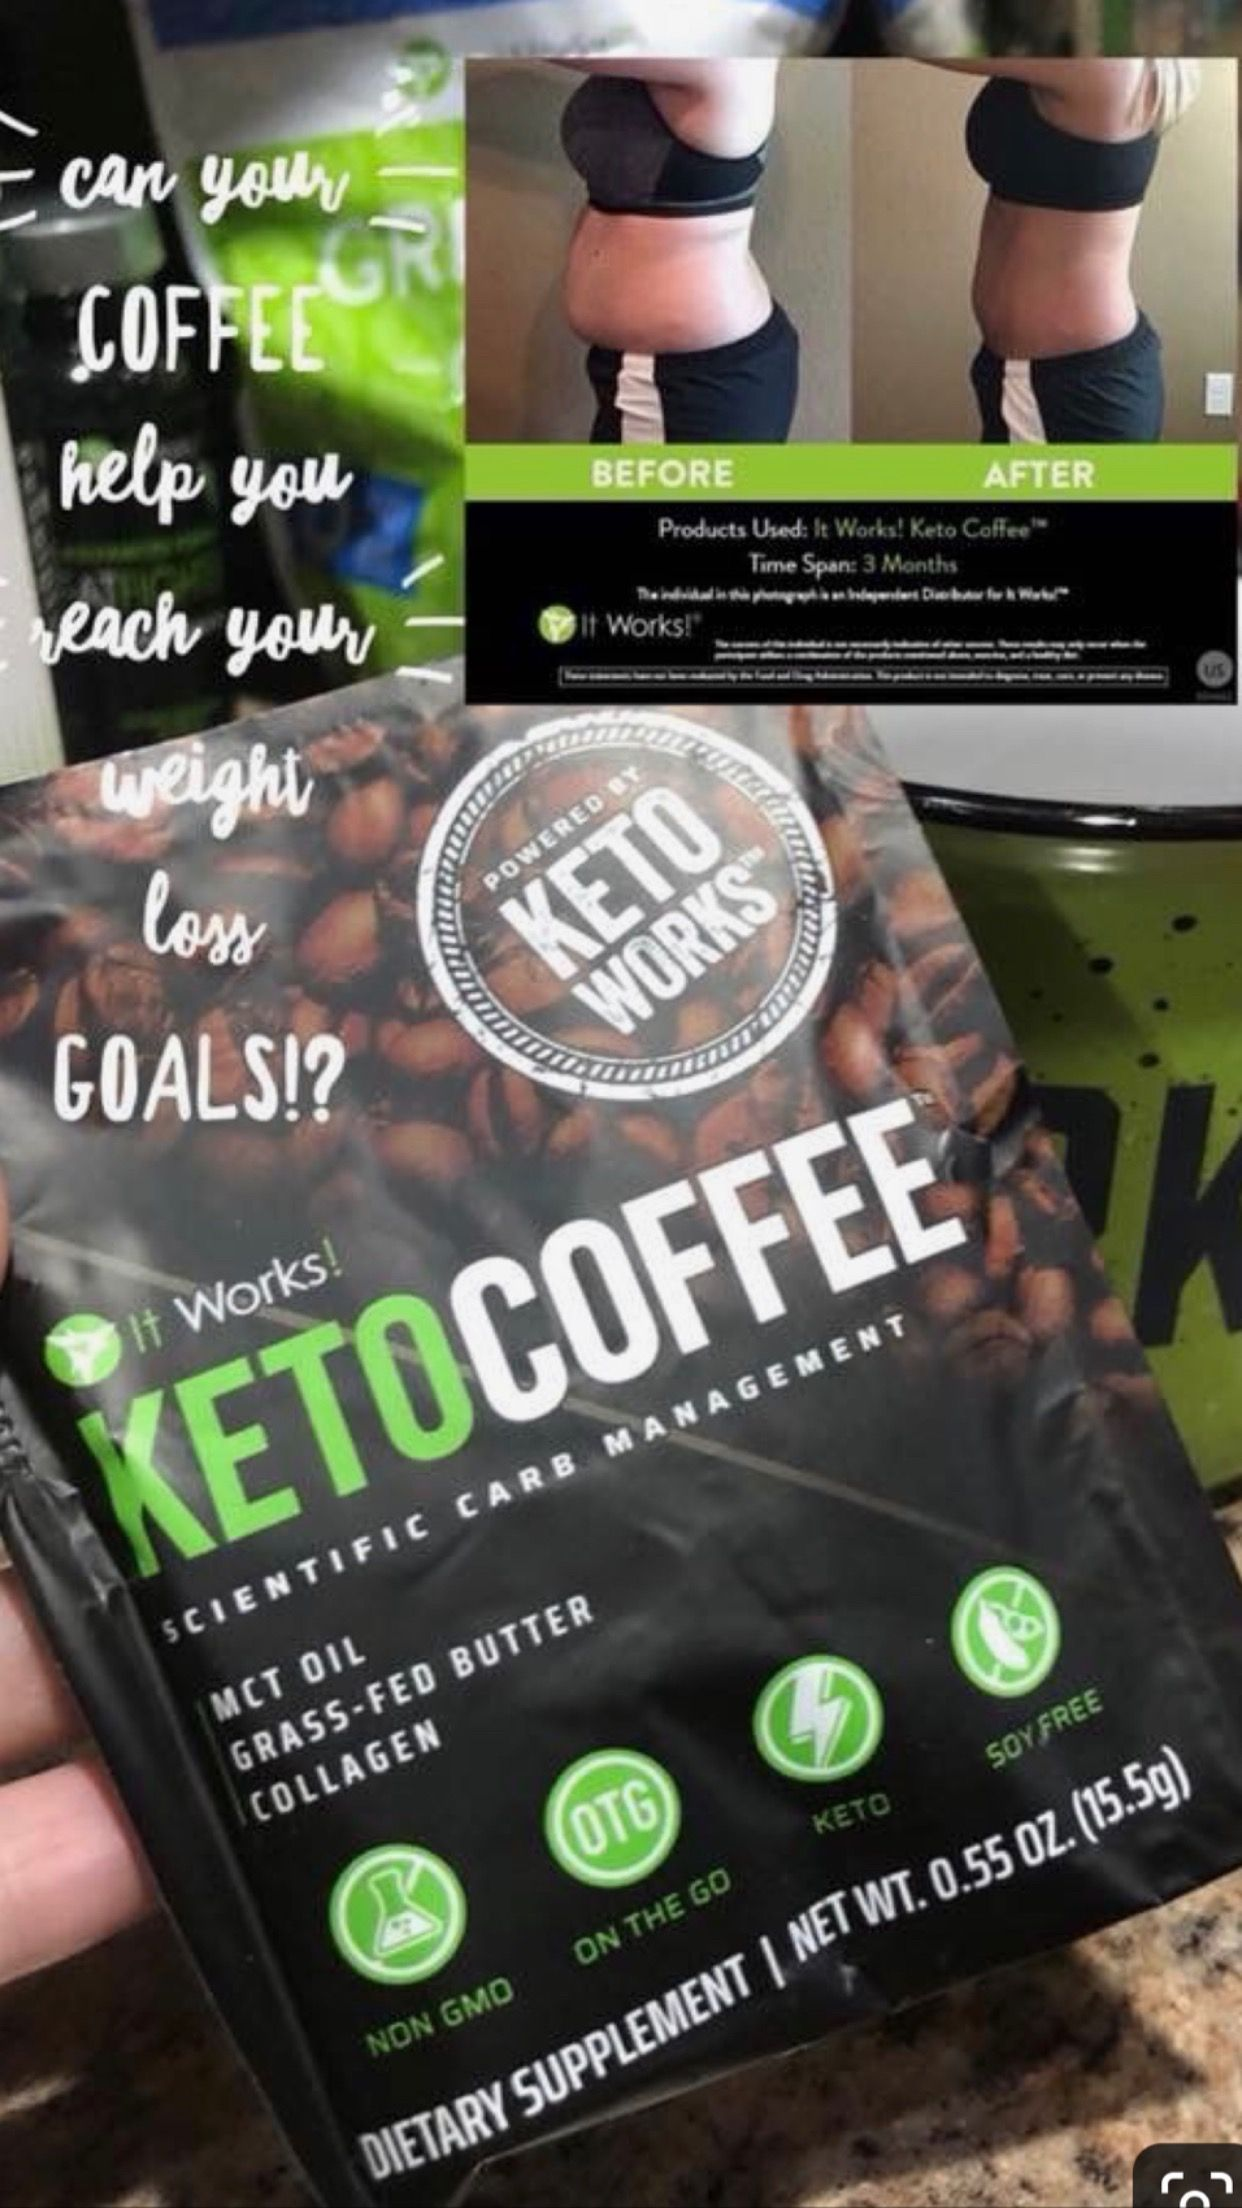 Love my Keto Coffee💚 keto ketocoffee It works products